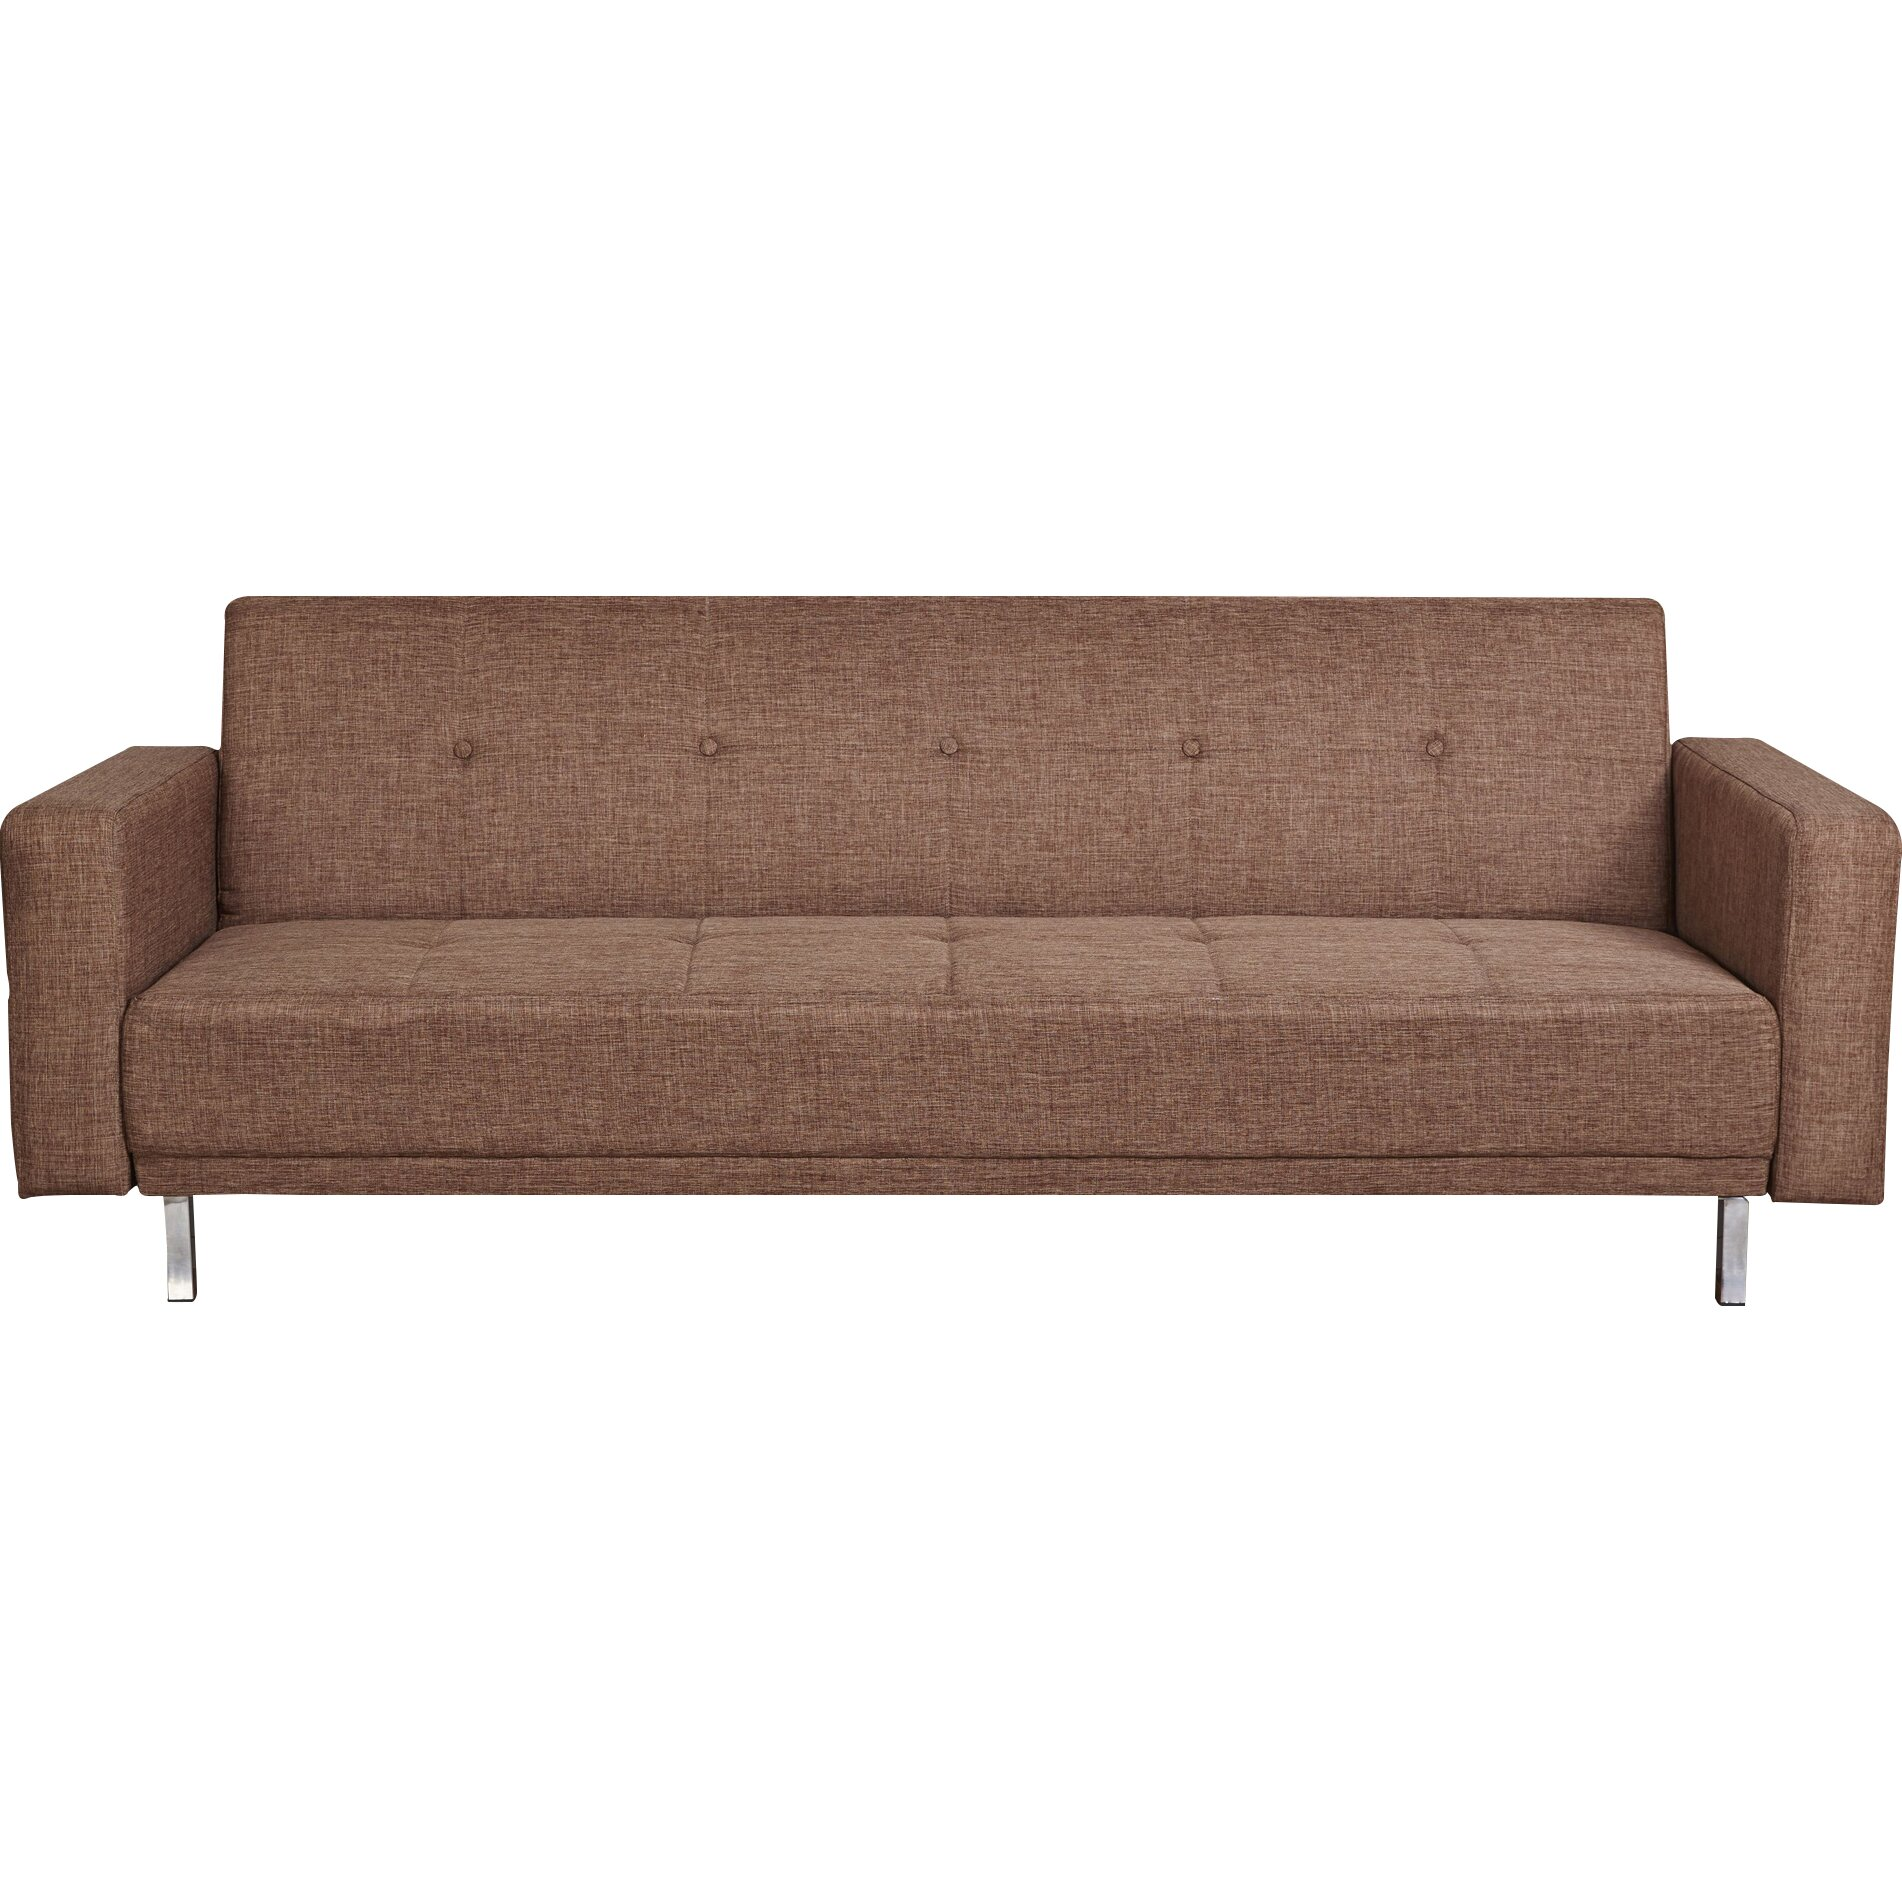 Mercury Row Convertible Sofa Reviews Wayfair